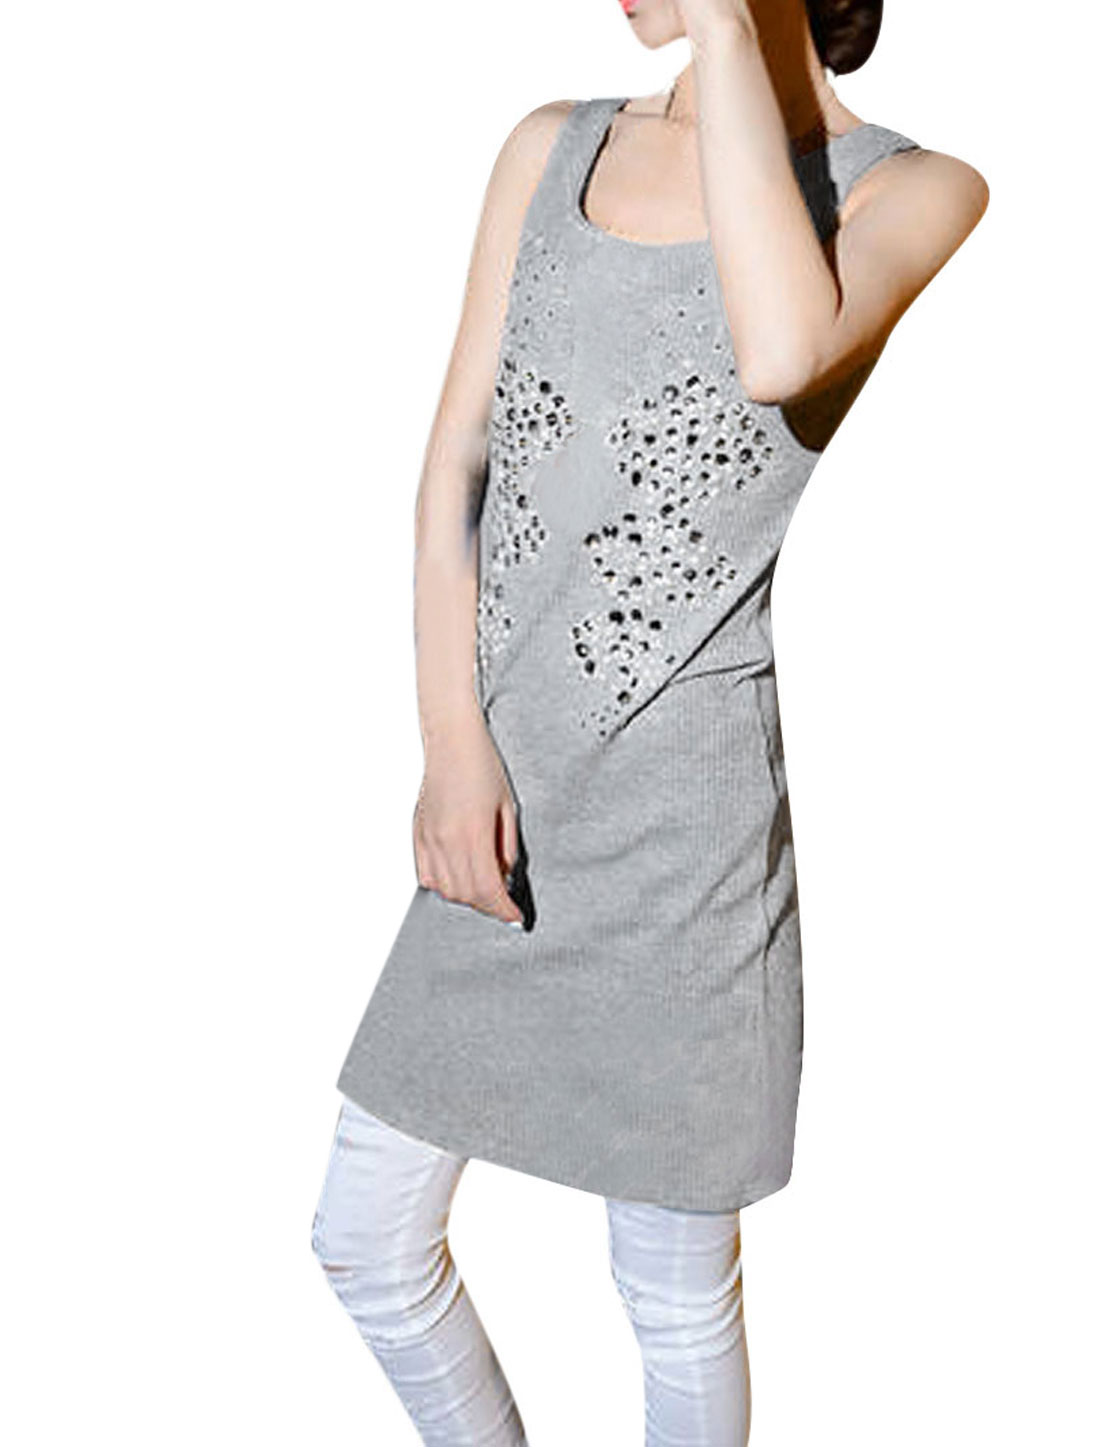 Woman Newly Plastic Crystal Decor Front Pure Light Gray Tank Mini Dress XS